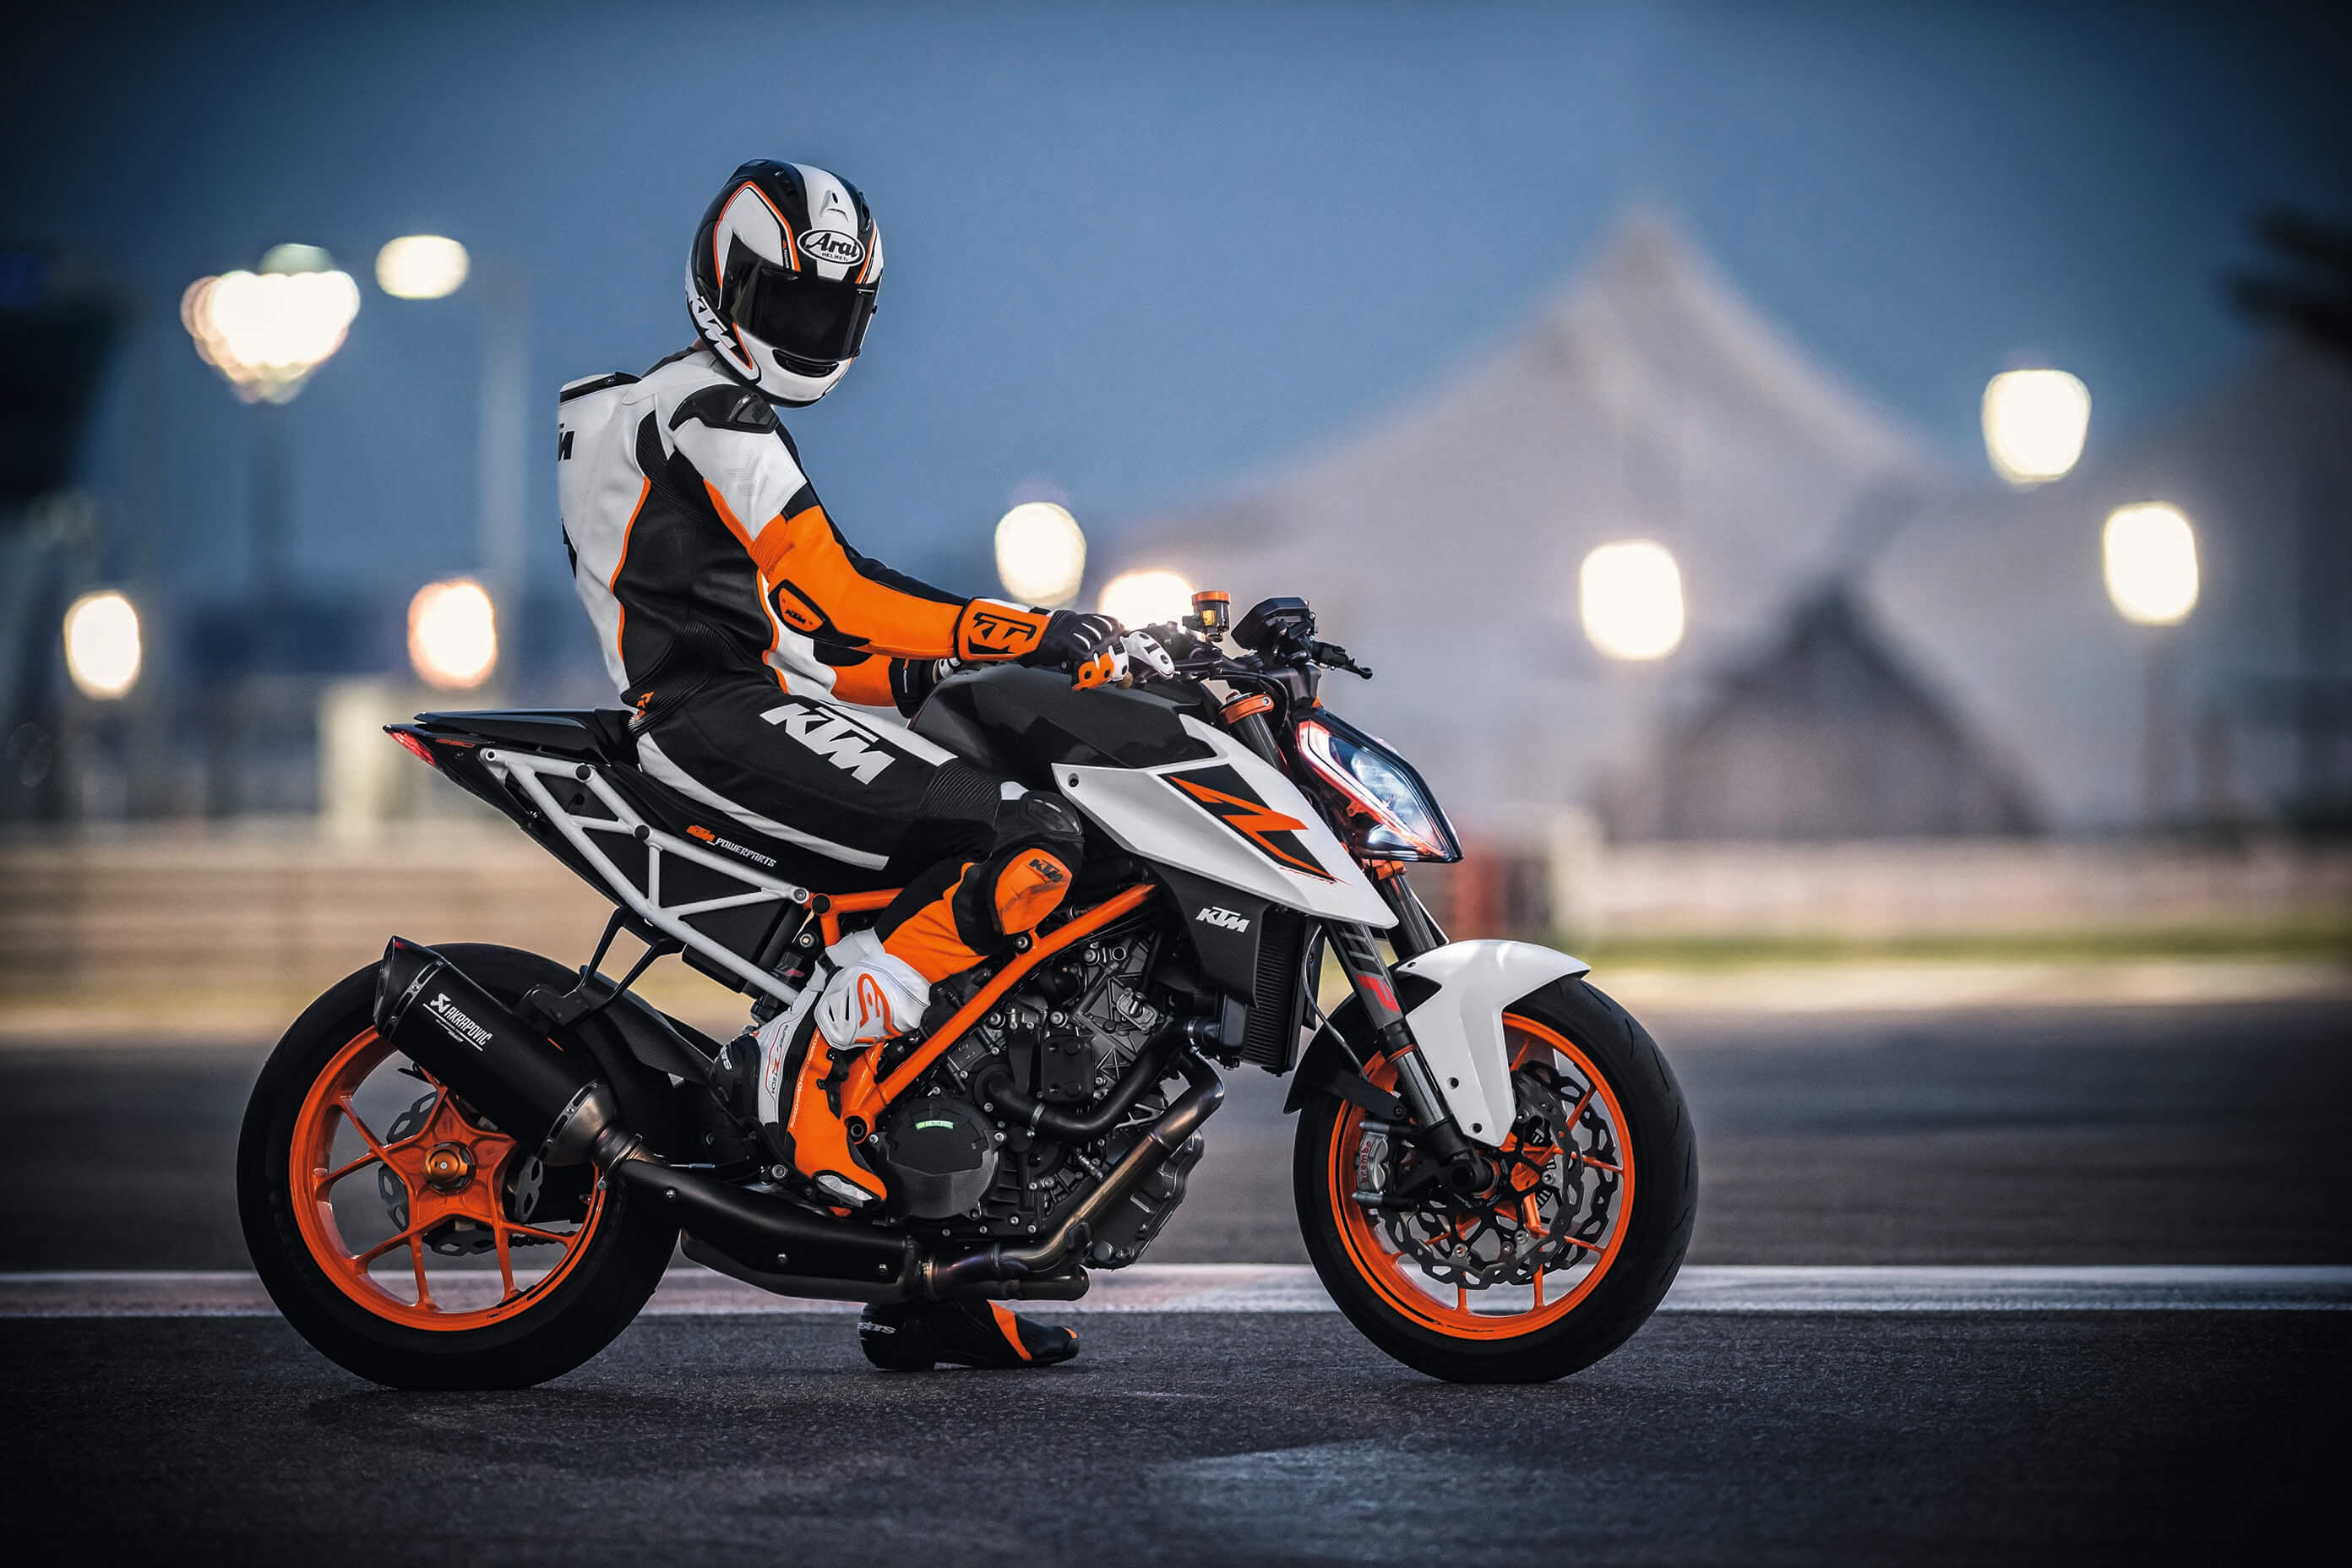 ktm bike background hd wallpaper 66458